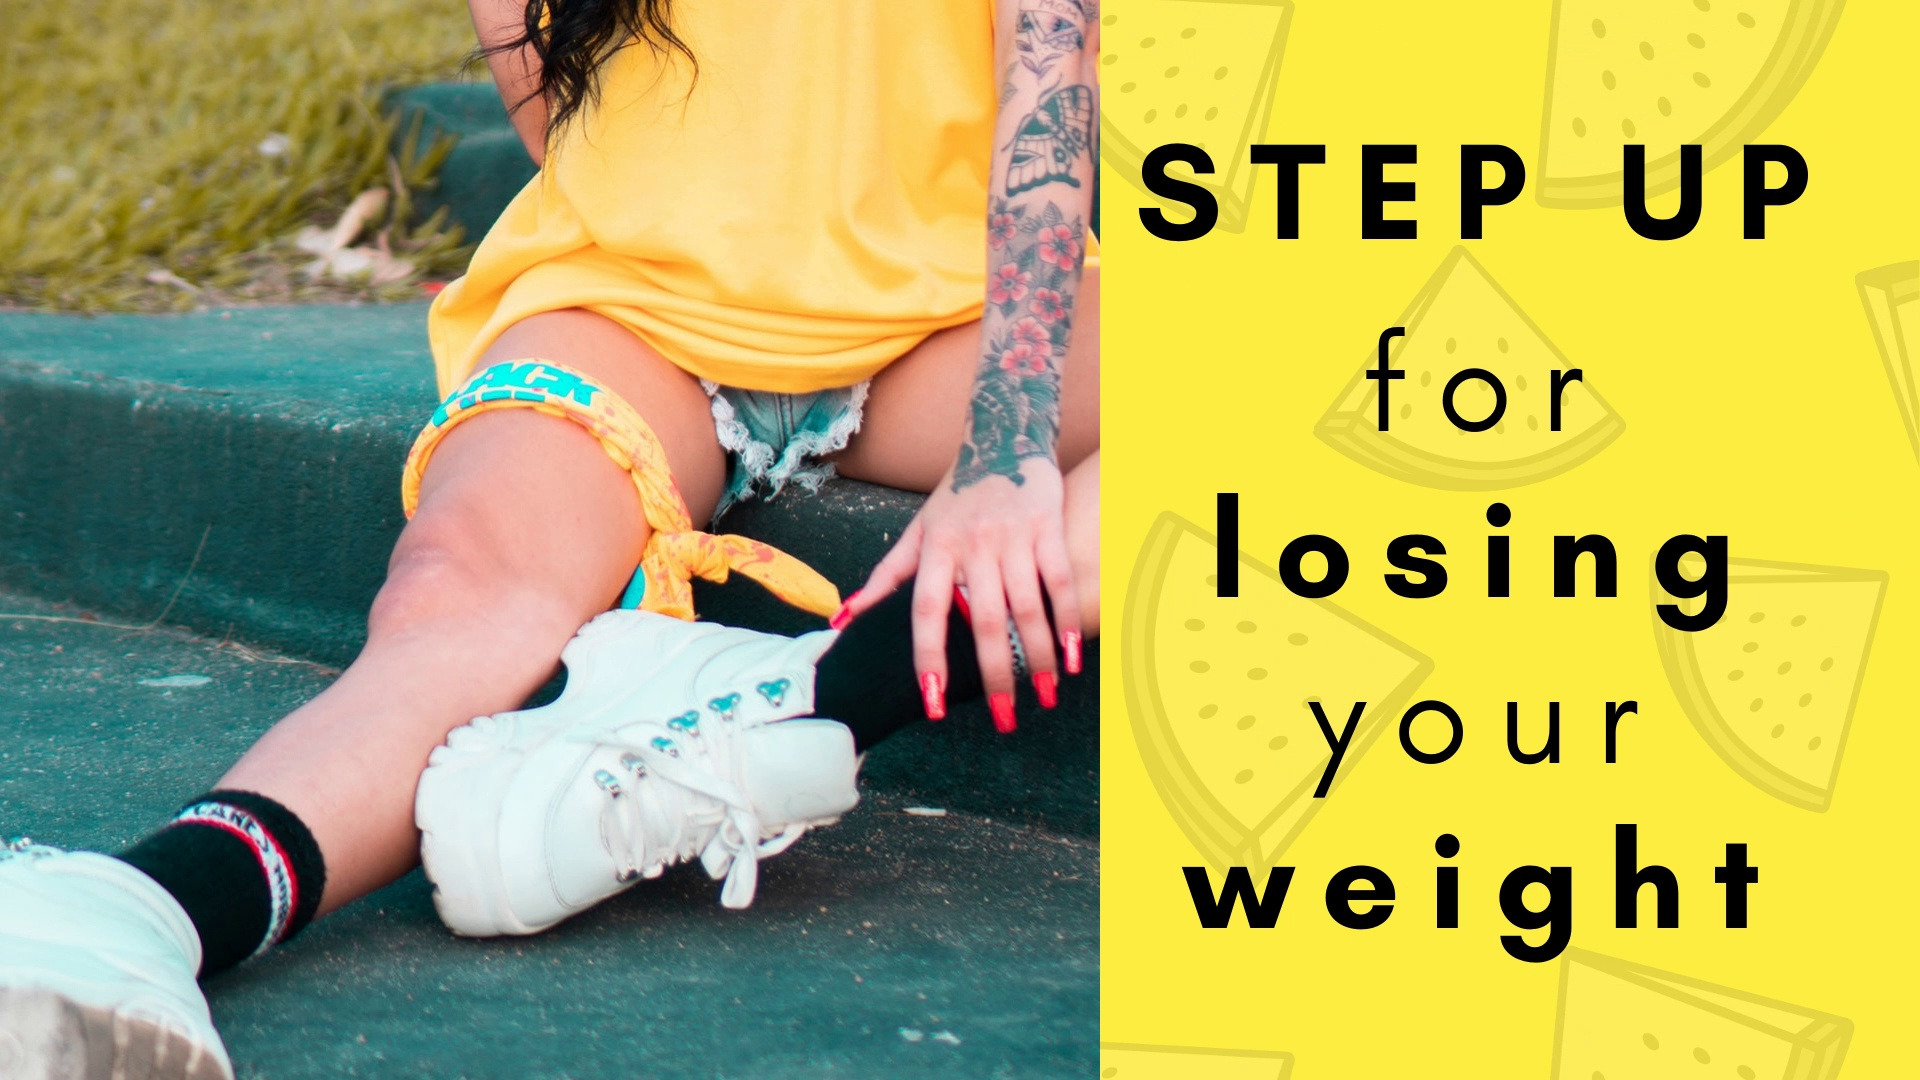 Step up Exercise Daily will Help You to Weight Loss Fast and Natural | Weight Loss | WP